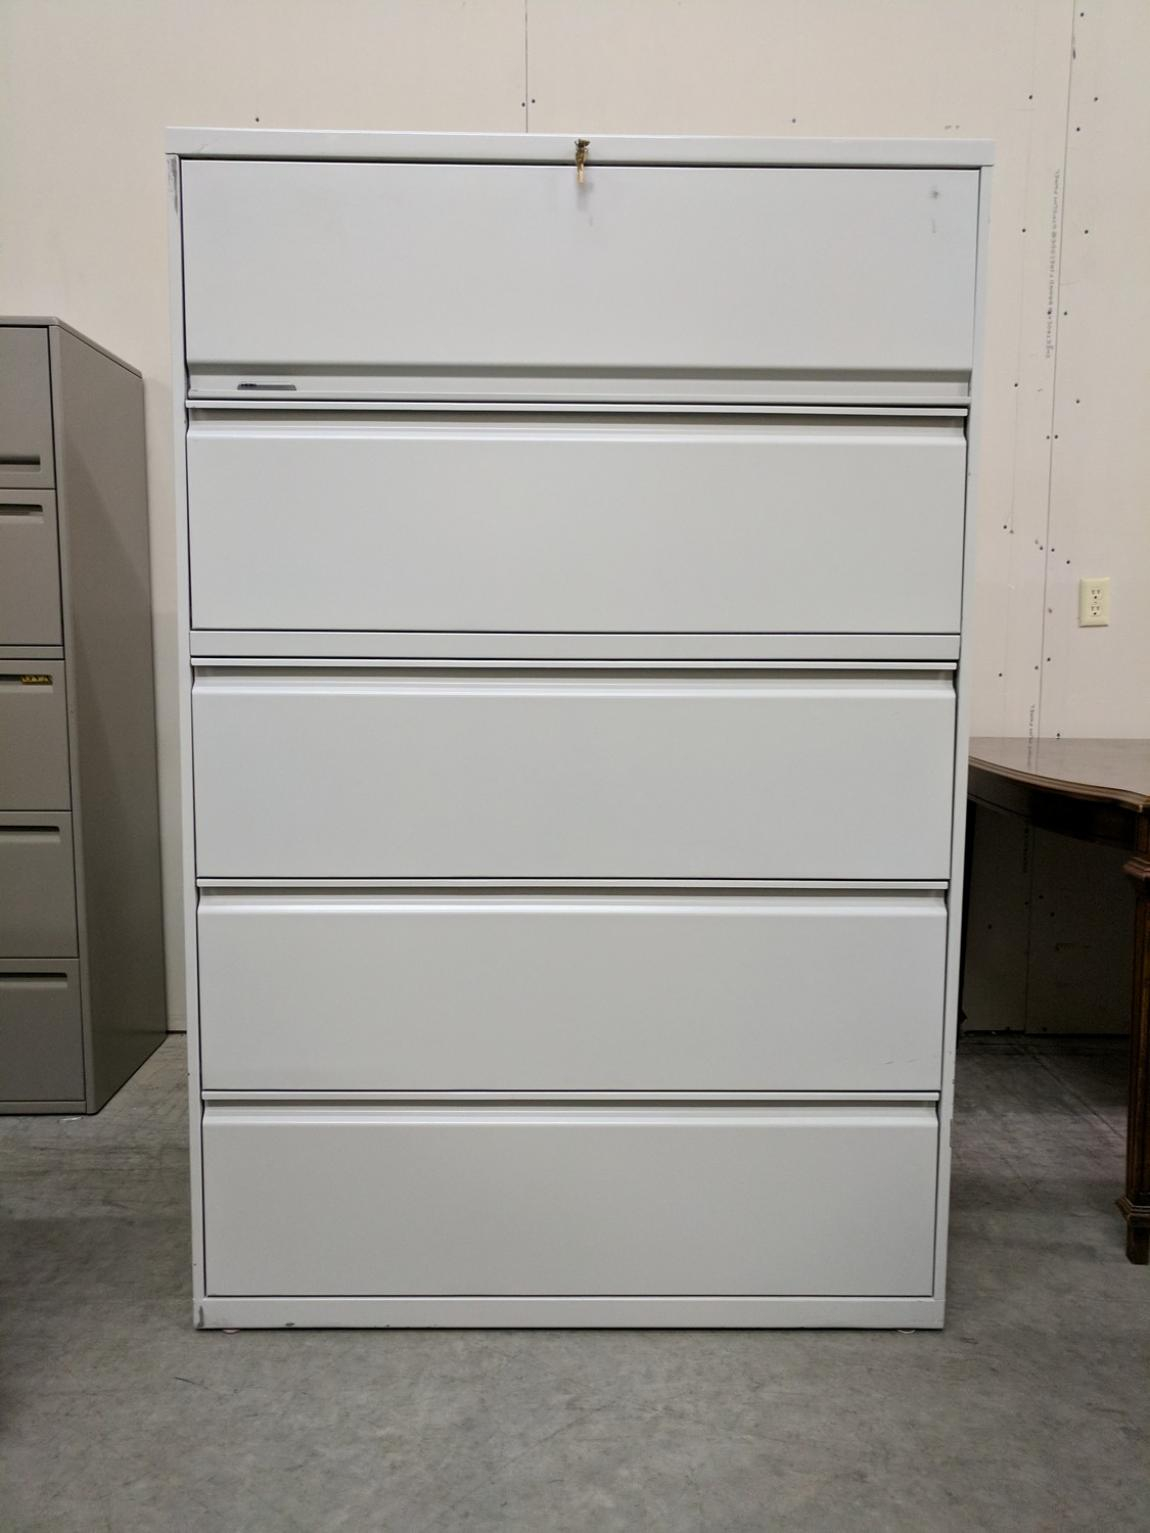 Images Of Hon 5 Drawer Putty Lateral File Cabinet 42 Inch Wide within dimensions 1150 X 1533